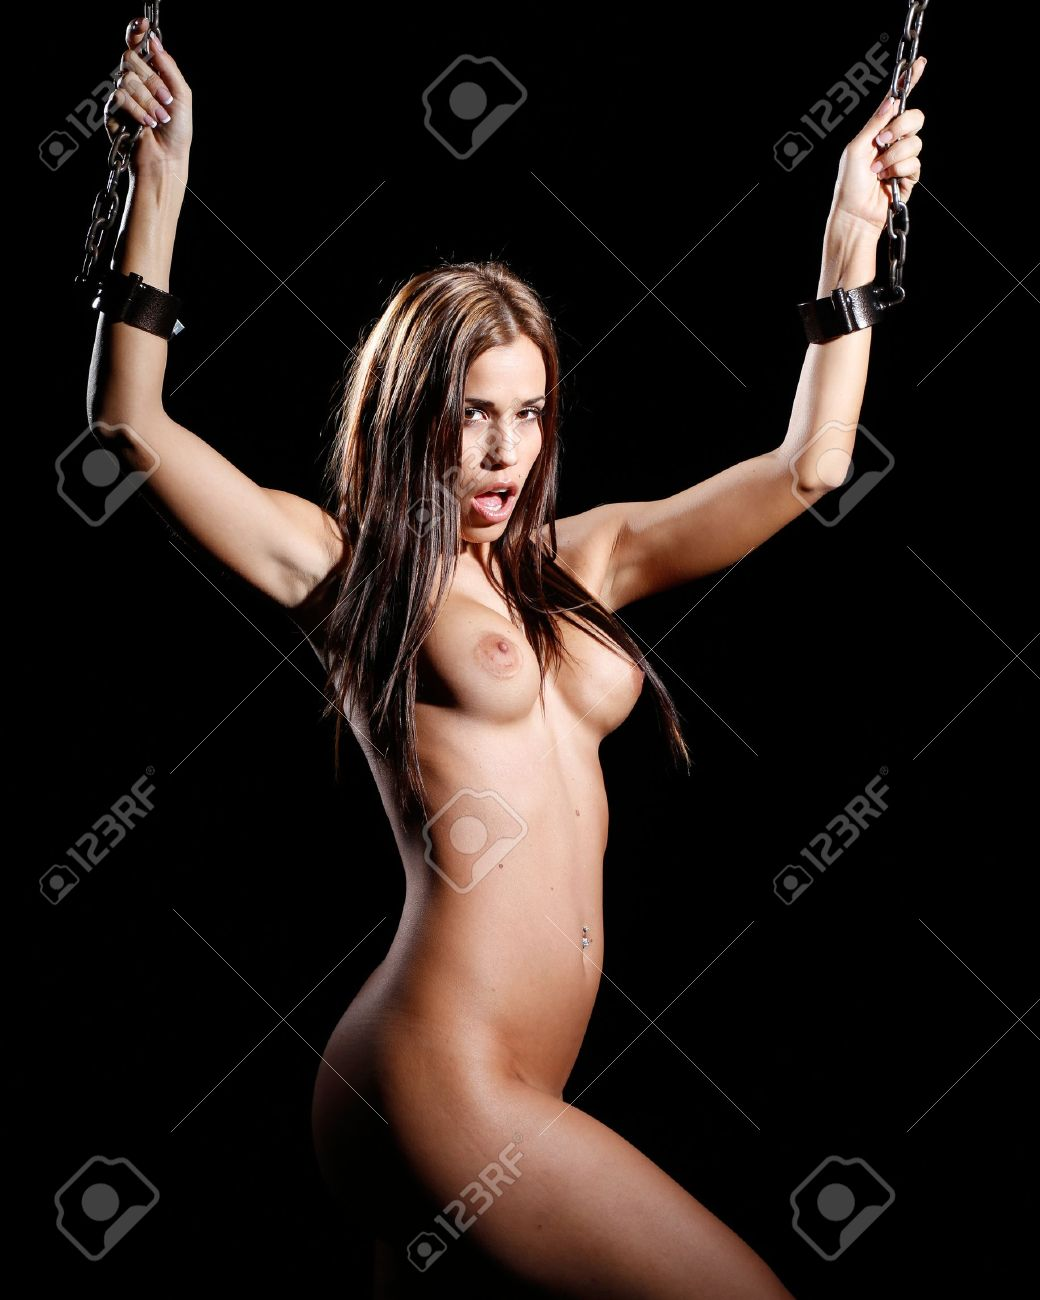 Nude chained art cartoon photo